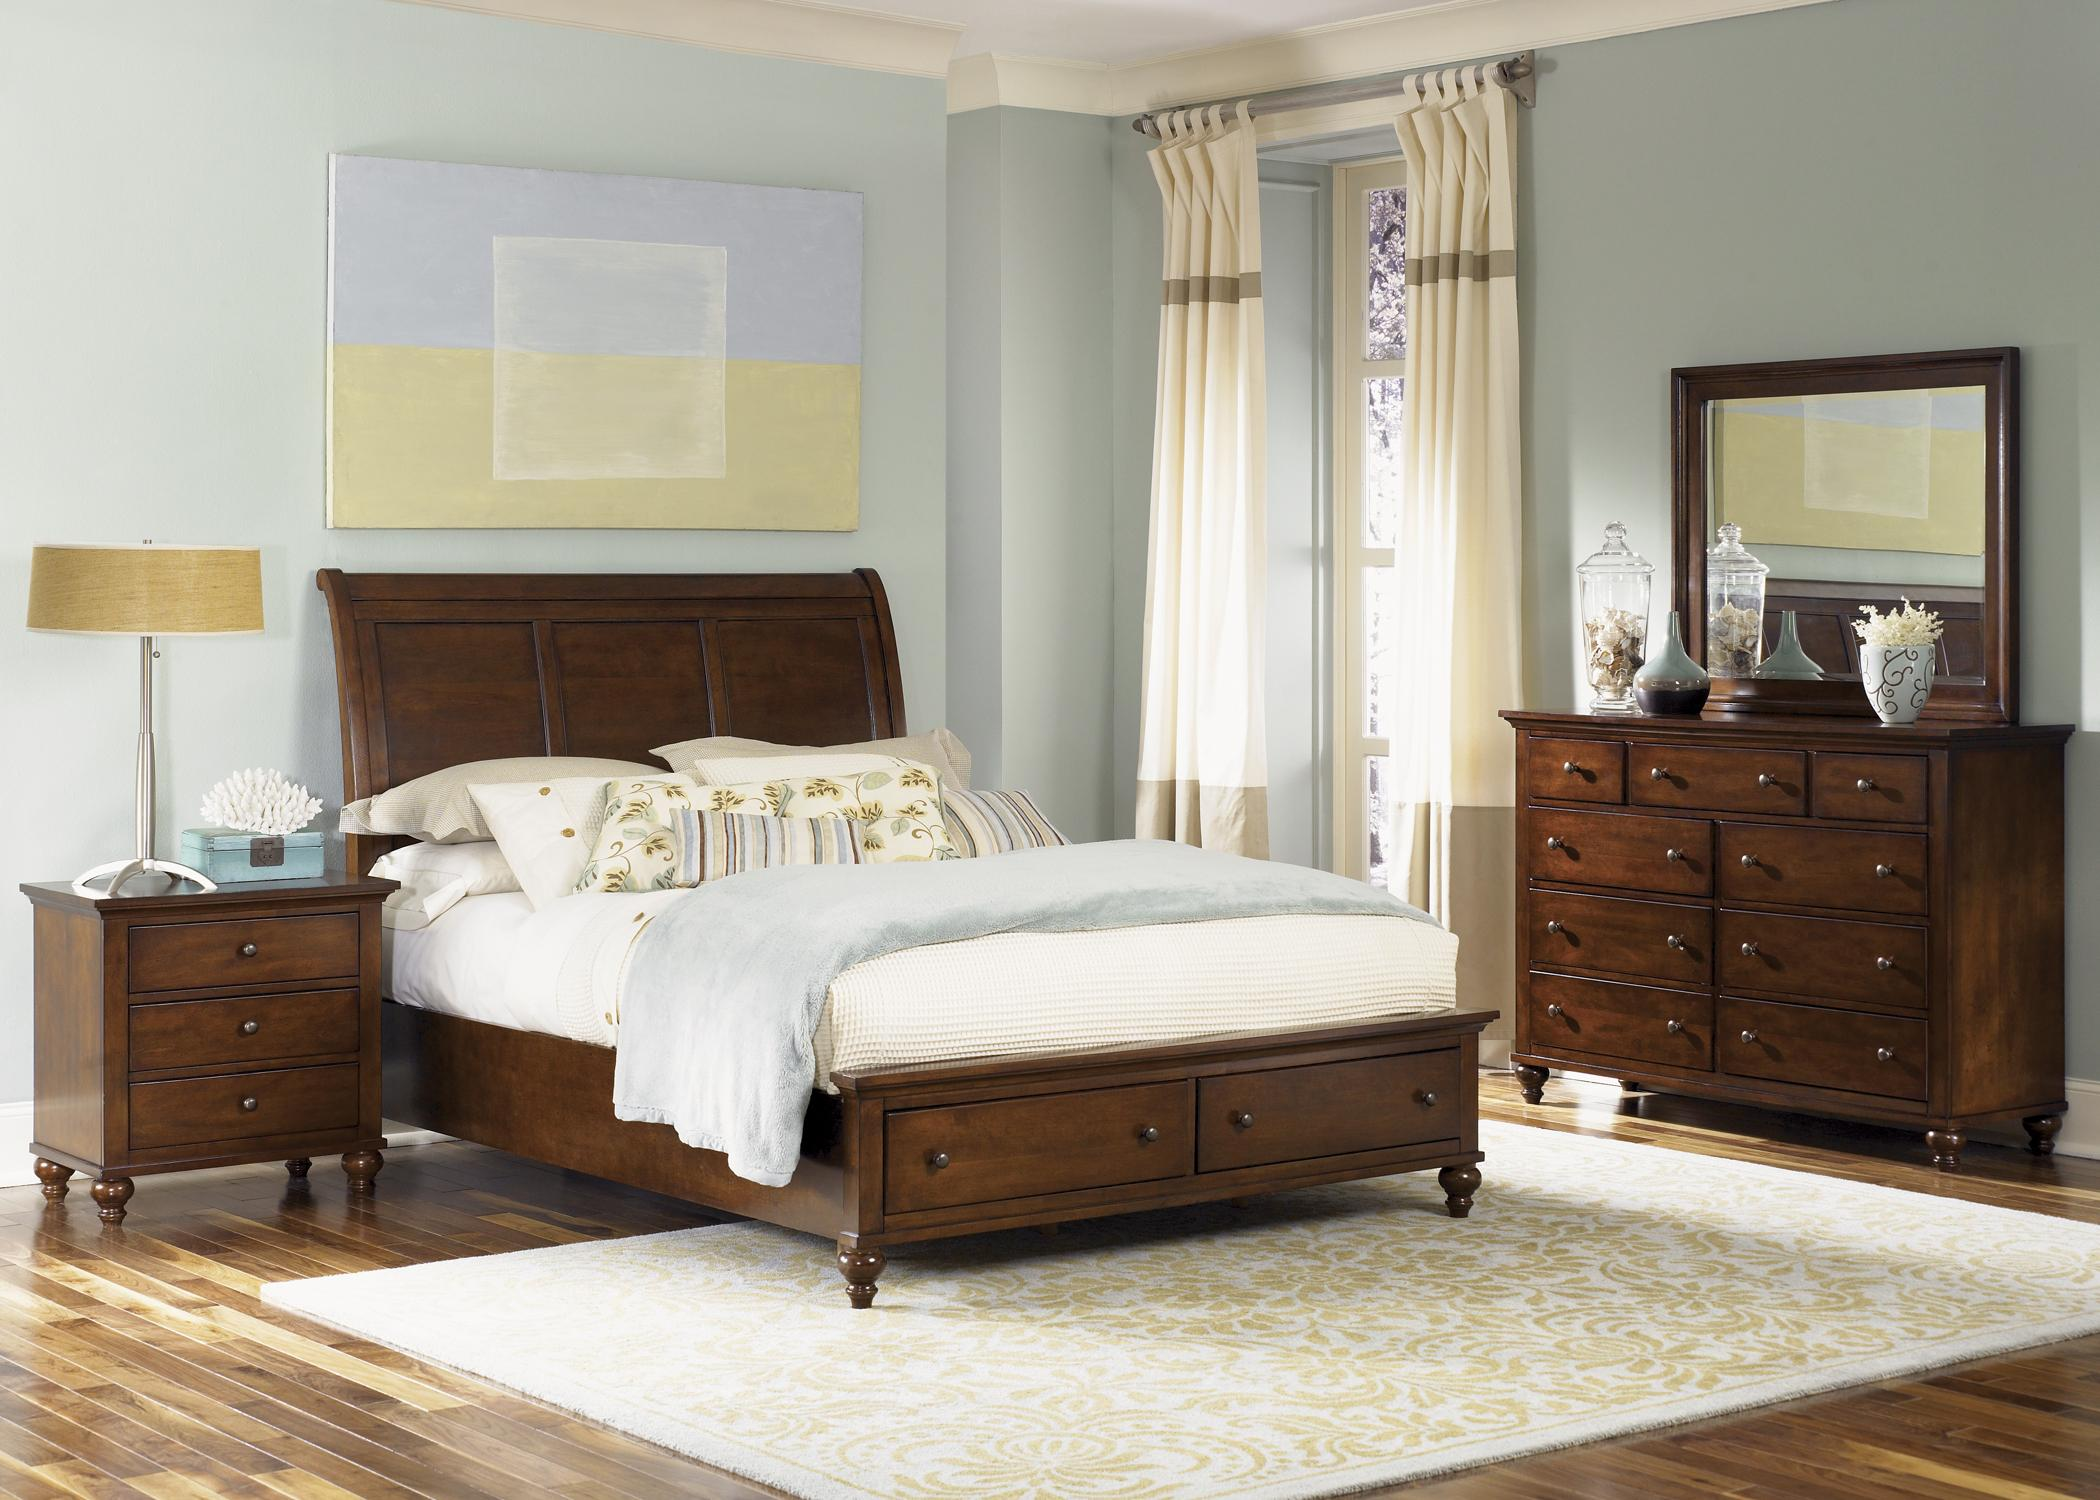 Bedroom Sets York Pa transitional king sleigh bed with 2 drawer storage footboard